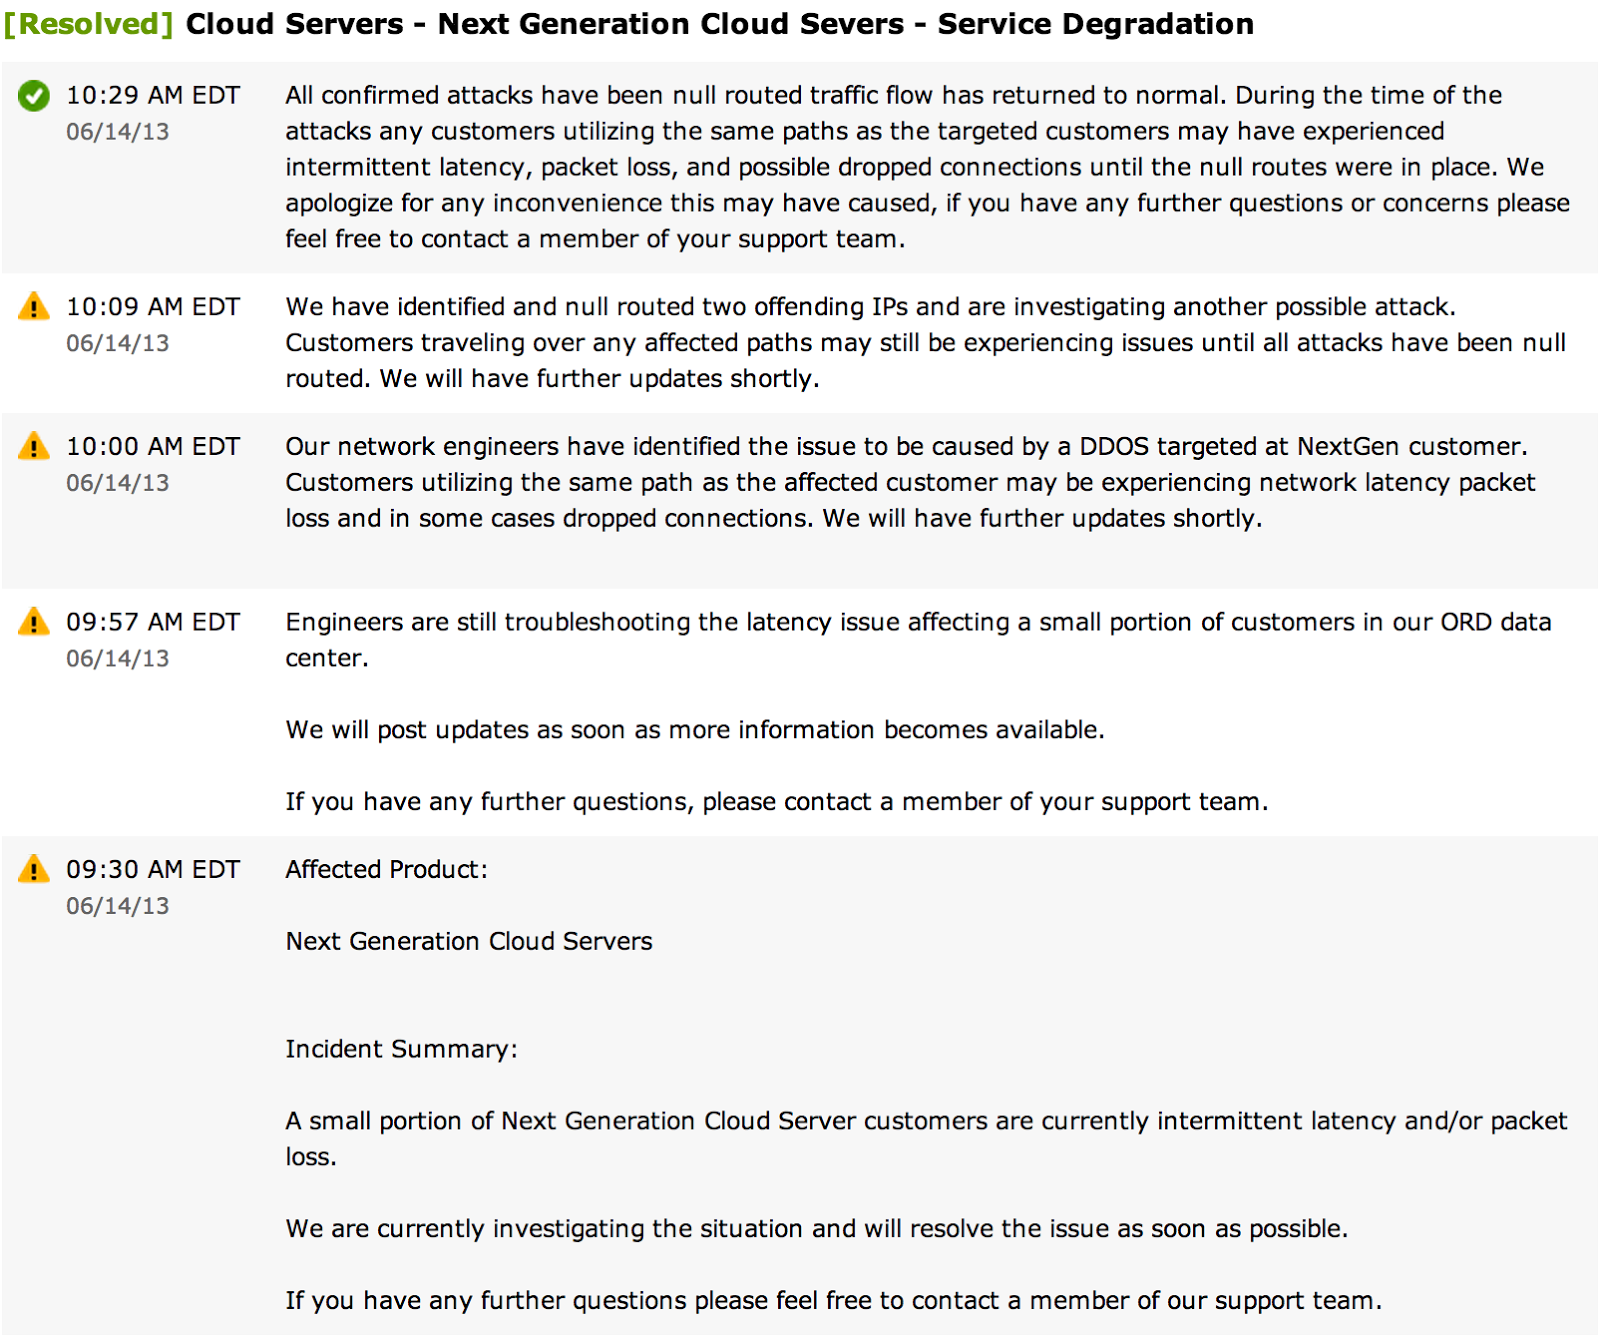 sflow multi tenant performance isolation this incident report from an openstack based cloud data center illustrates how performance problems can propagate and affect multiple tenants in the